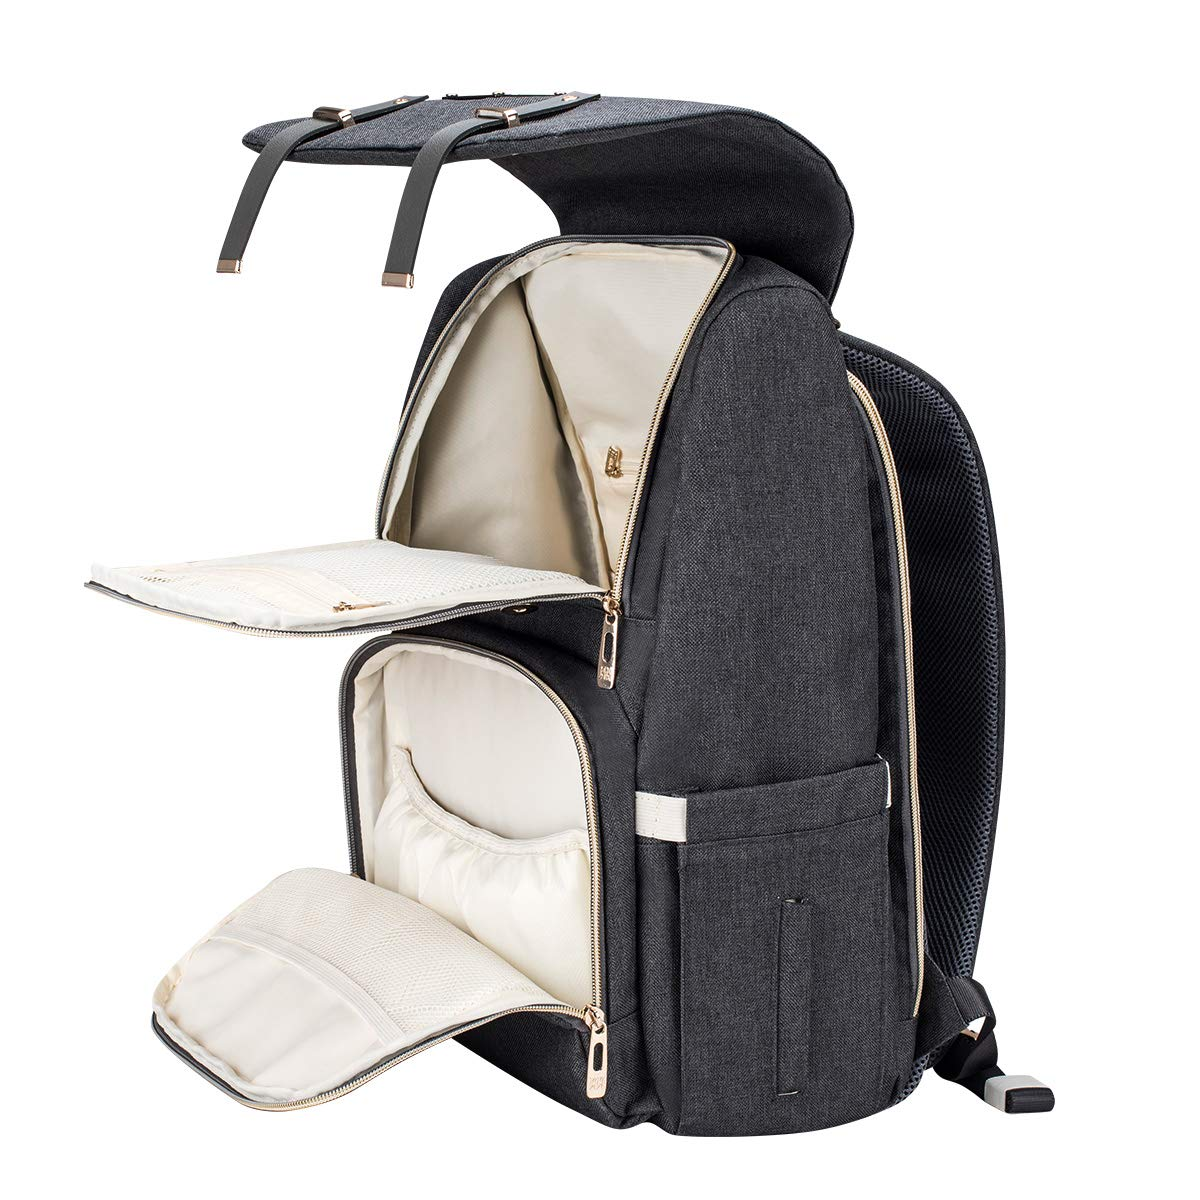 134146ce564 Bebamour  Casual College Backpack Lightweight Travel Wide Open Back to  School Backpack for Women  Men B07BK3P77K Christmas gift store